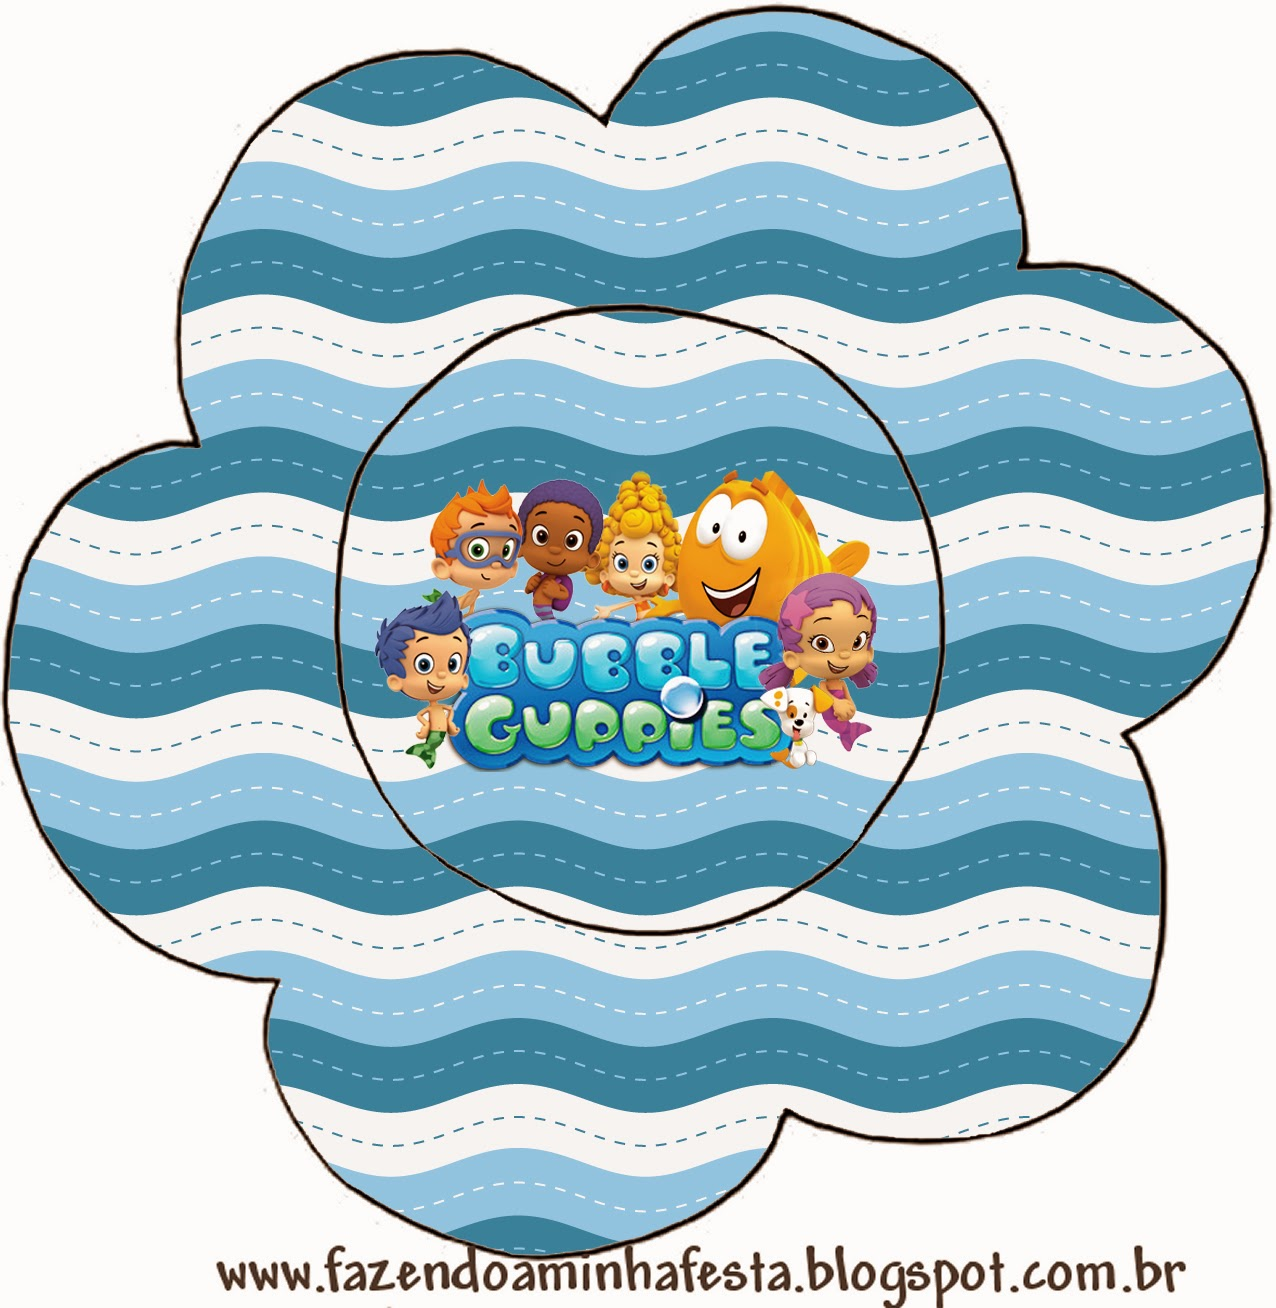 Bubble Guppies Free Printable Invitations. | Oh My Fiesta ...